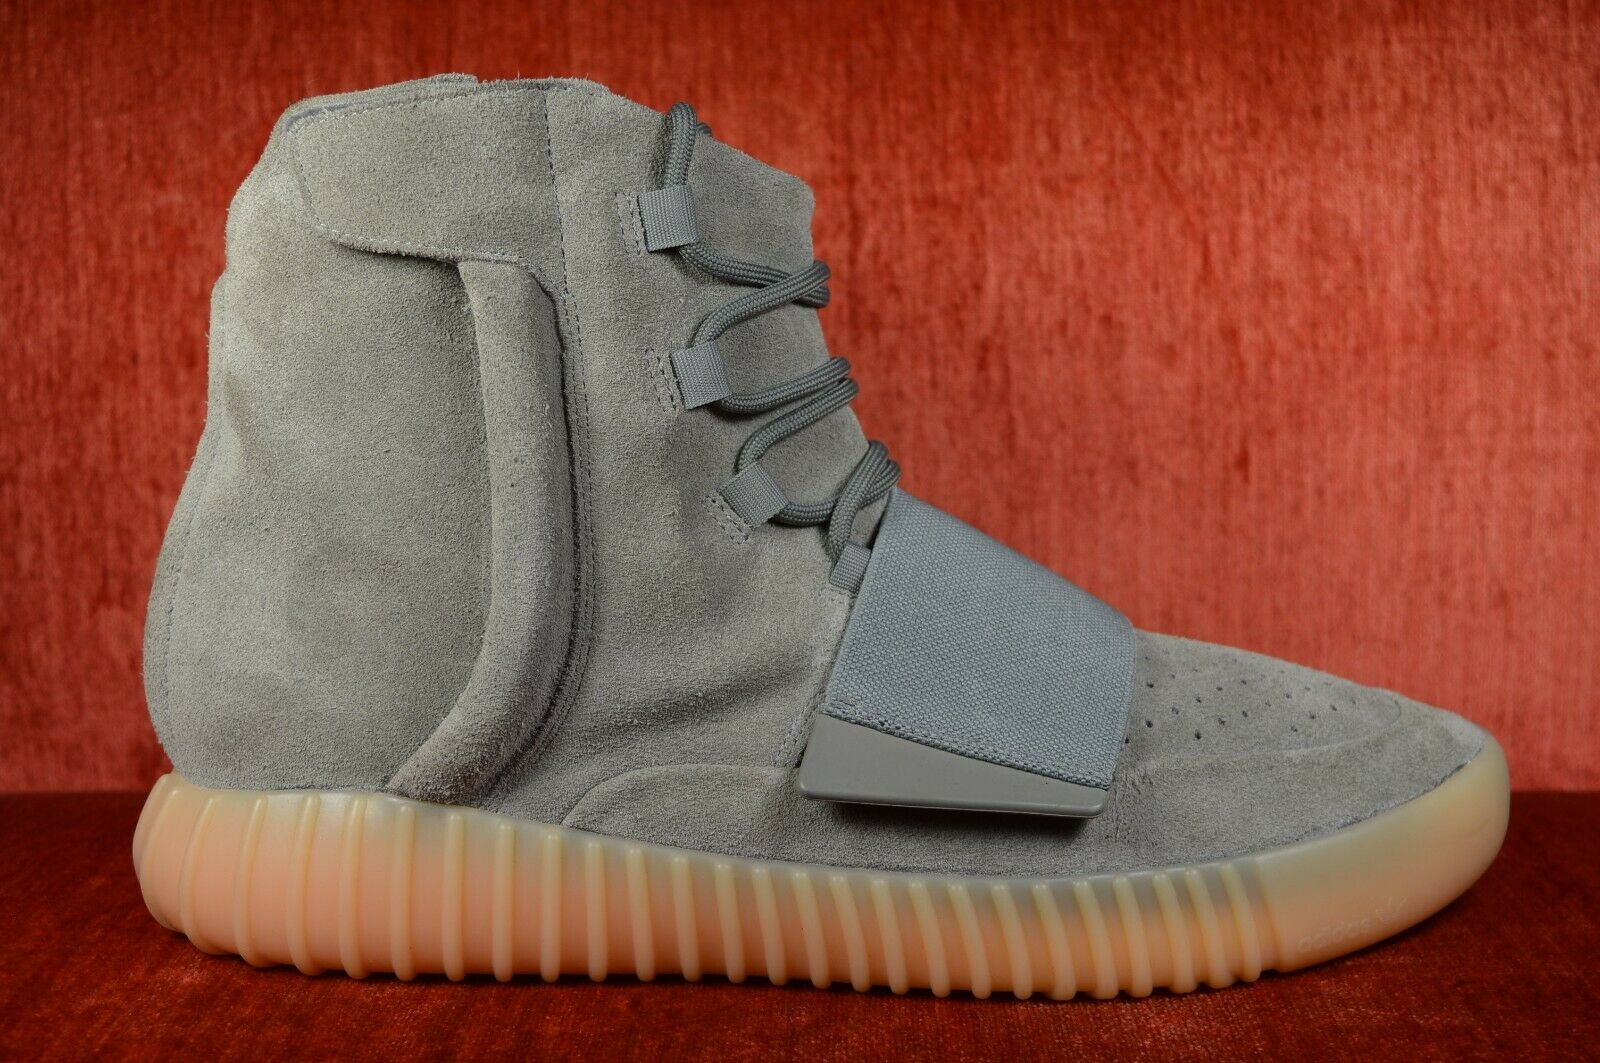 WORN TWICE Adidas Yeezy Boost 750 Grey Gum Glow in the Dark BB1840 Size 12